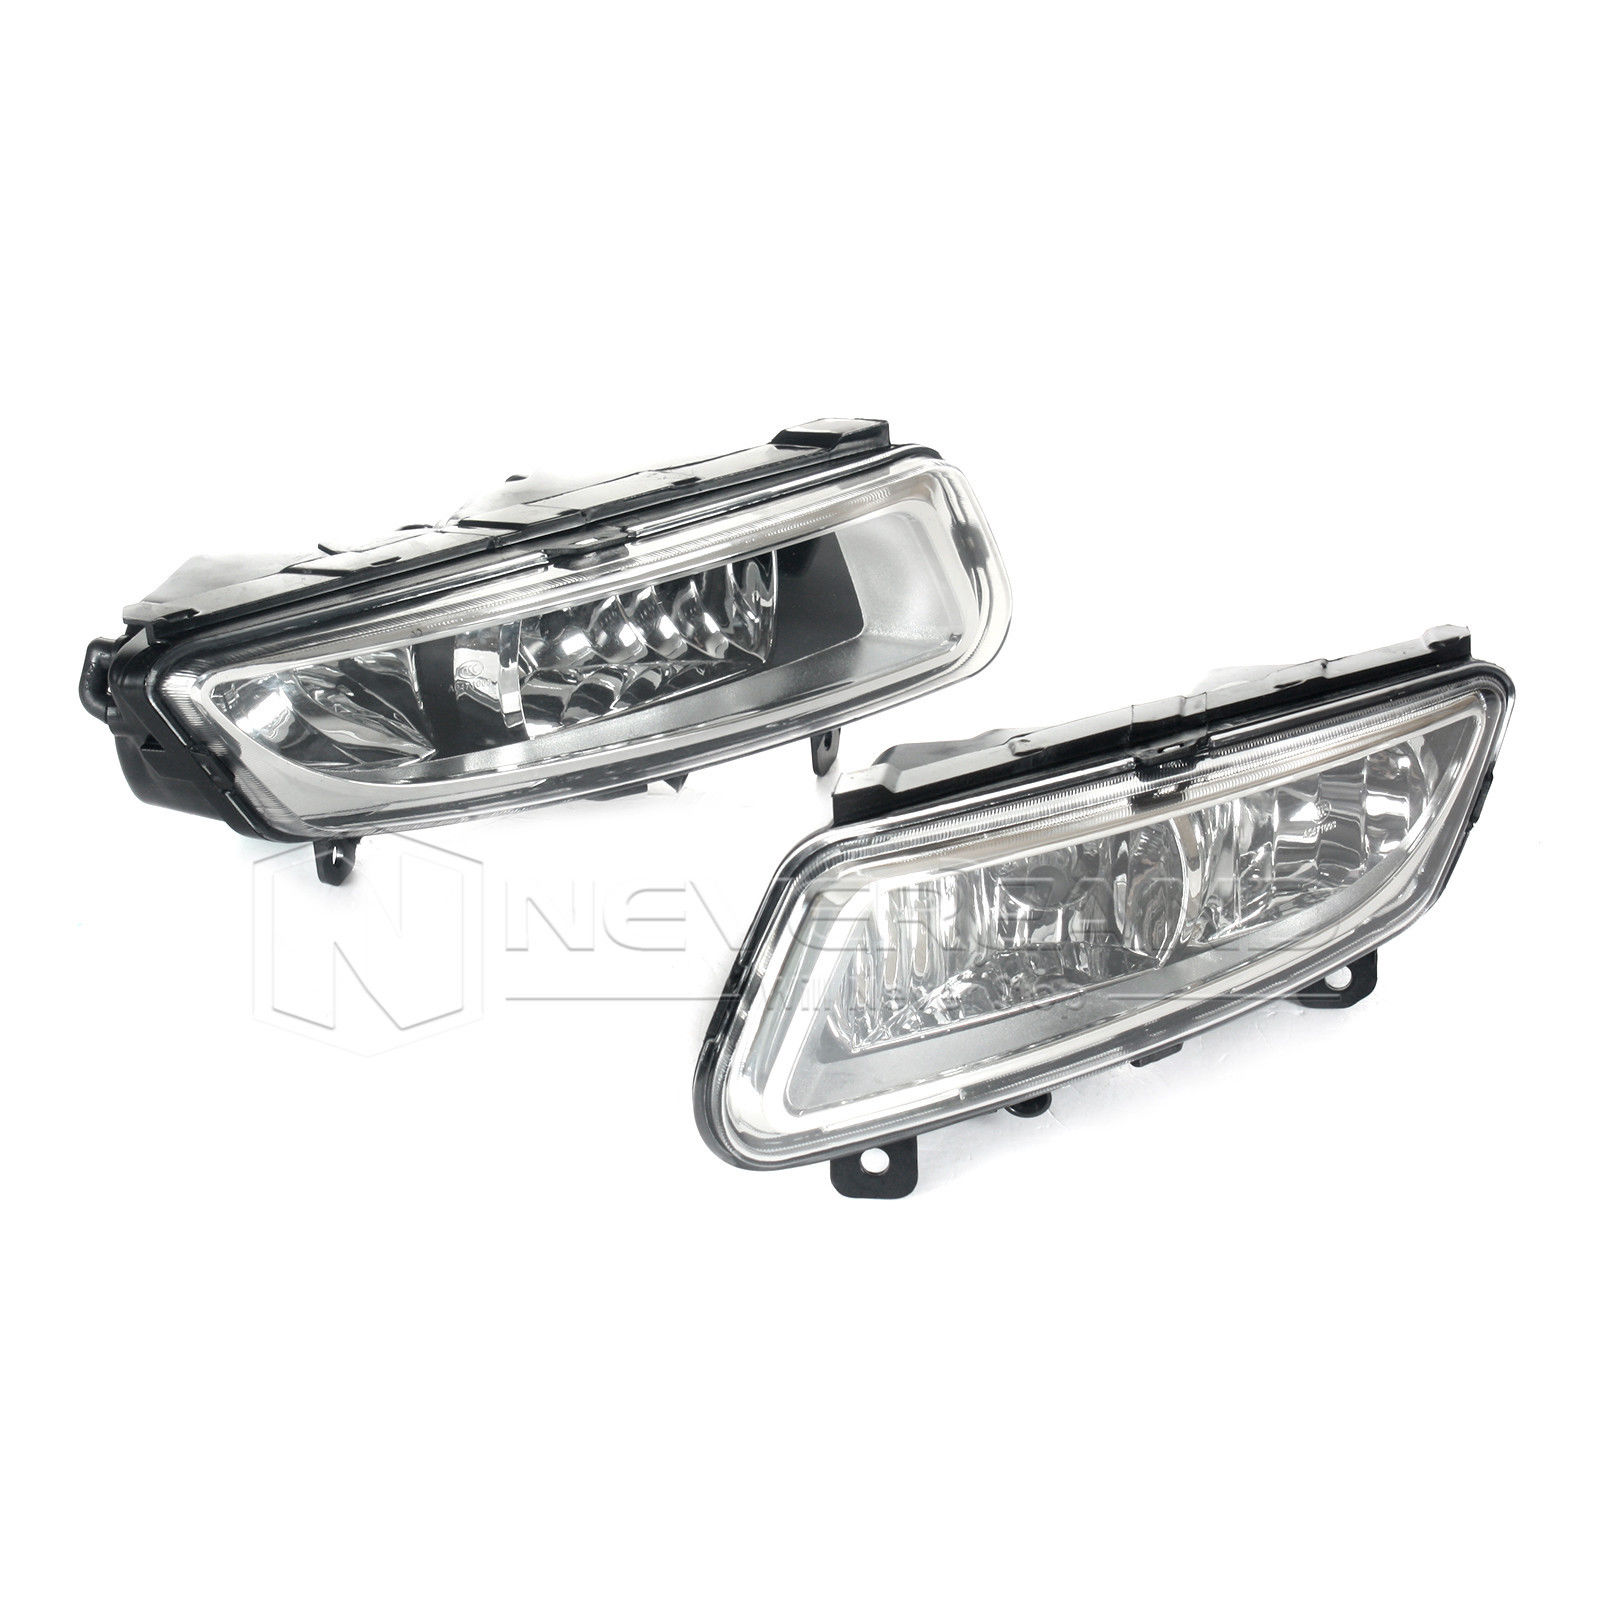 ФОТО For VW Polo MK8 Hatchback 6R 2010-2013 Front Bumper Lower Grille Grills Fog Lights Lamp Freeshipping D10